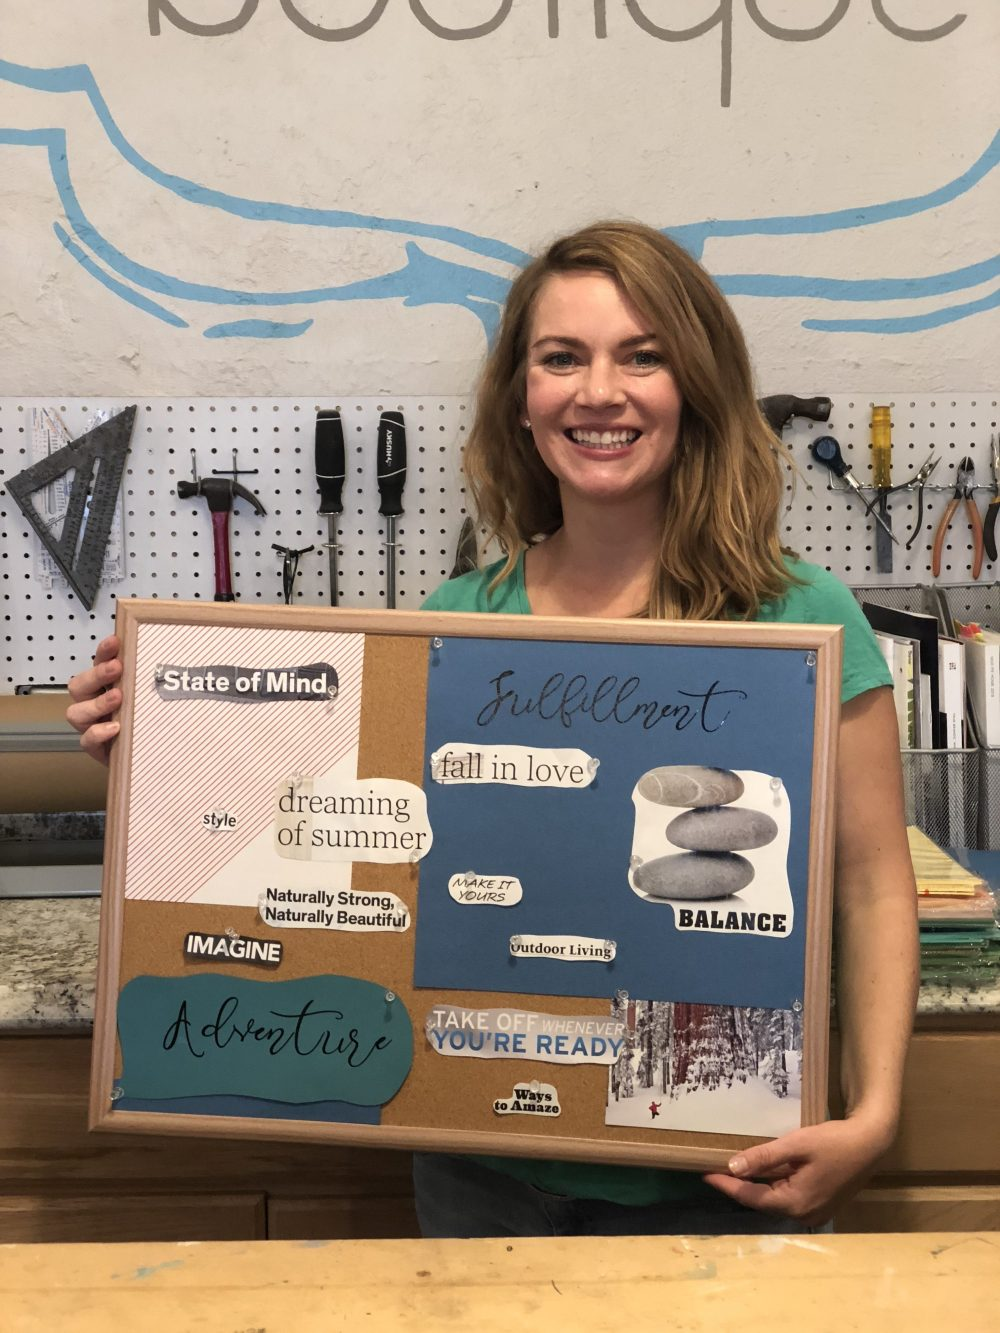 October 2018 Vision Board Workshop Recap